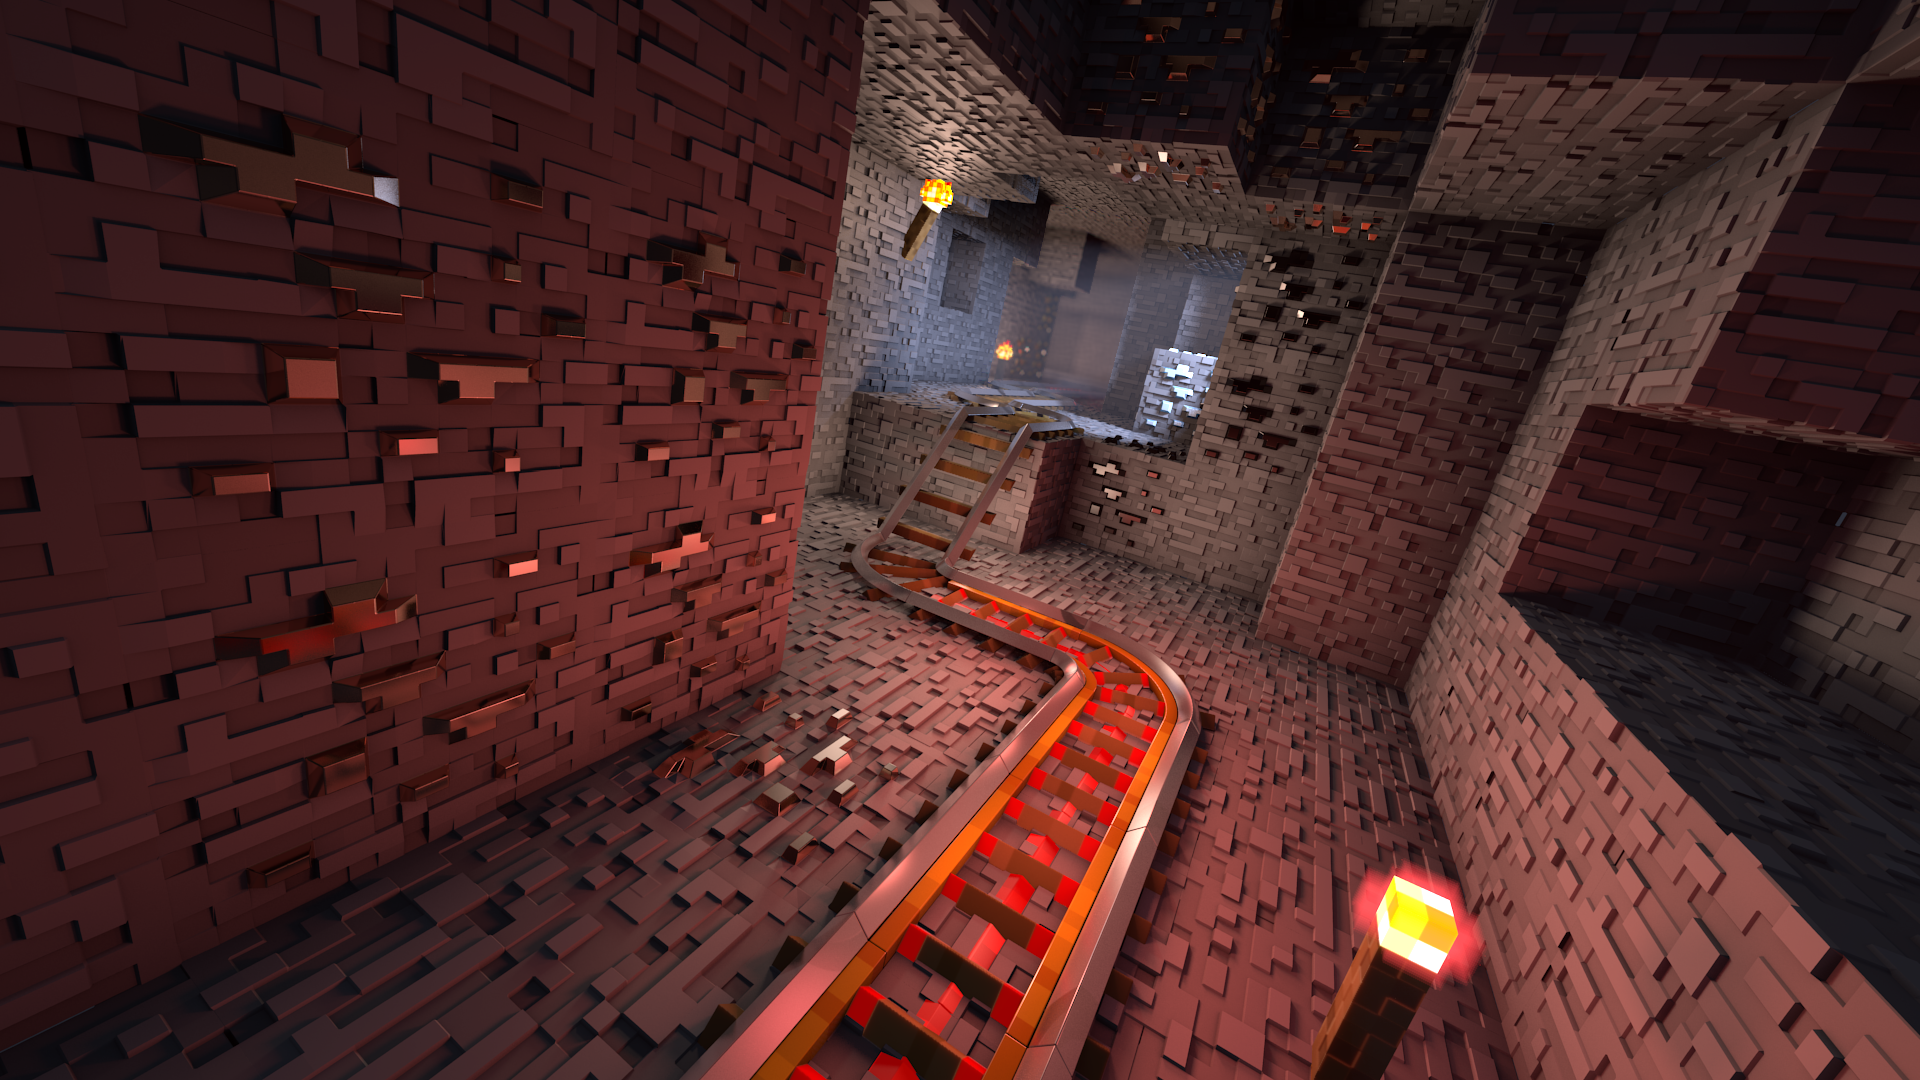 Most Inspiring Wallpaper Minecraft Red - minecraft_rails_redeux_by_krist_silvershade-d7qbyxi  Gallery_463097.png